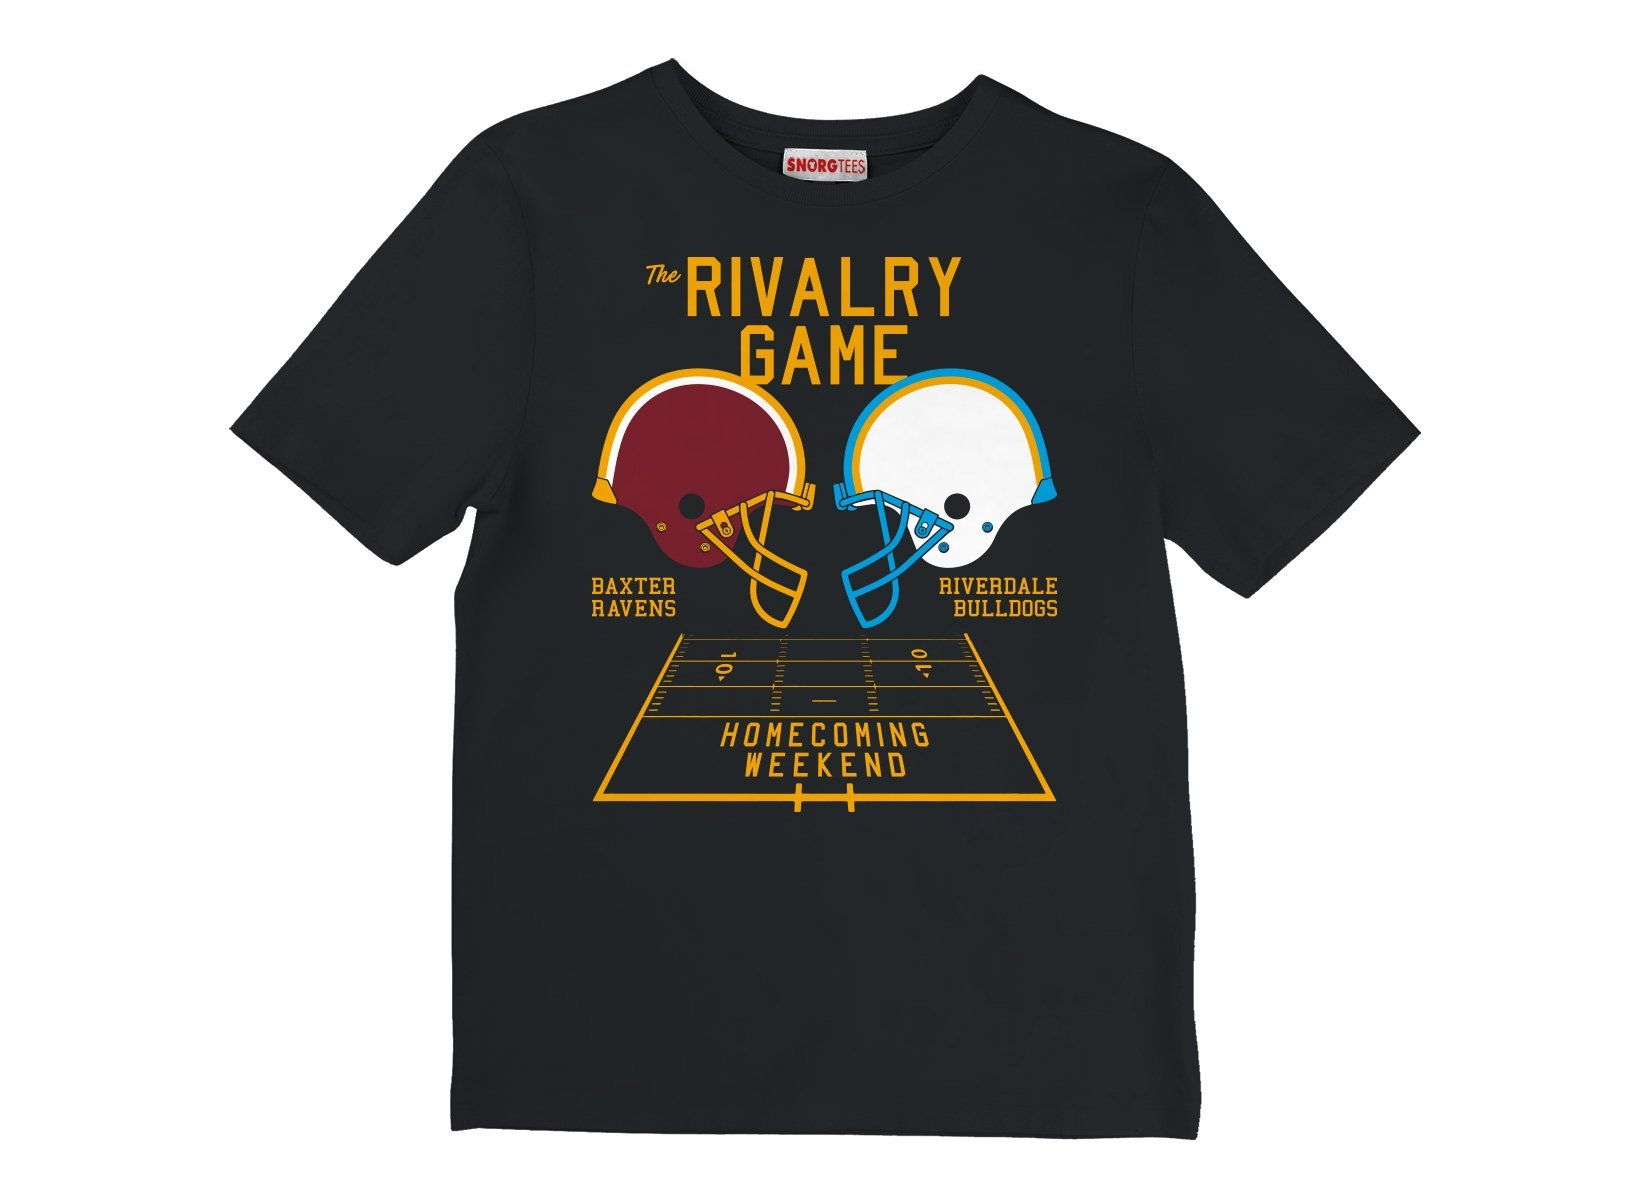 The Rivalry Game on Kids T-Shirt